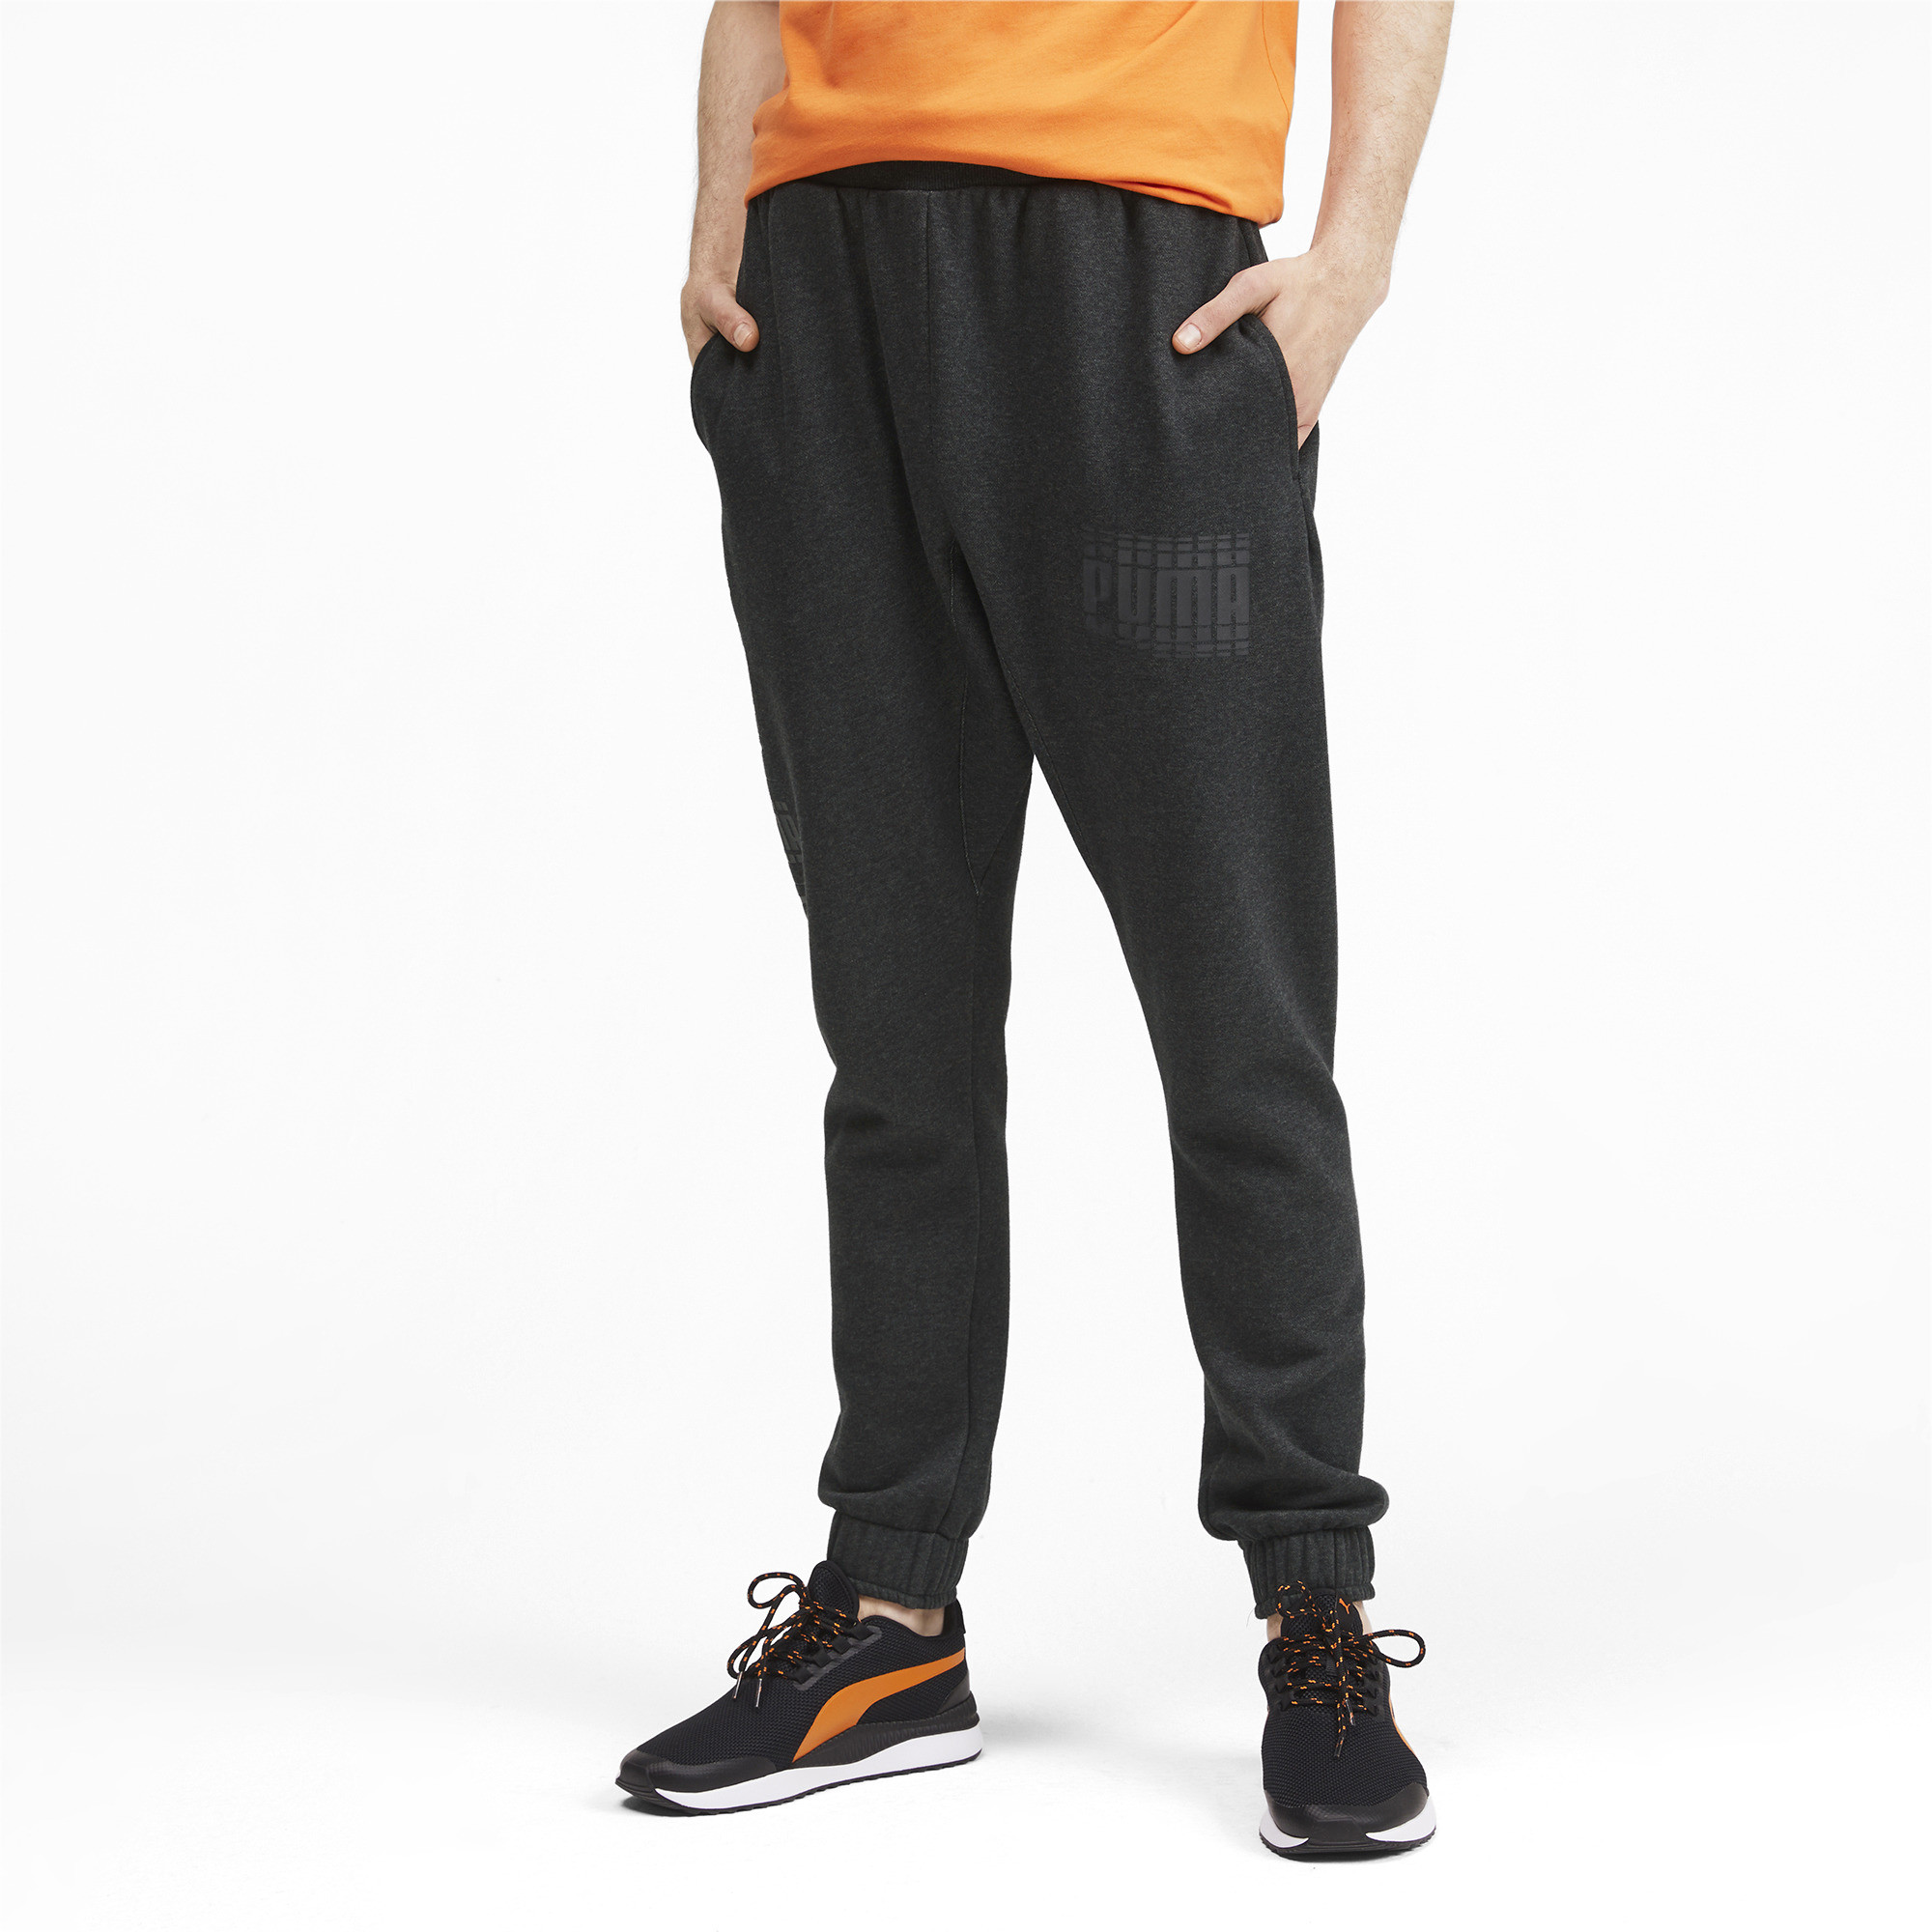 PUMA-Rebel-Bold-Men-039-s-Sweatpants-Men-Knitted-Pants-Basics thumbnail 14